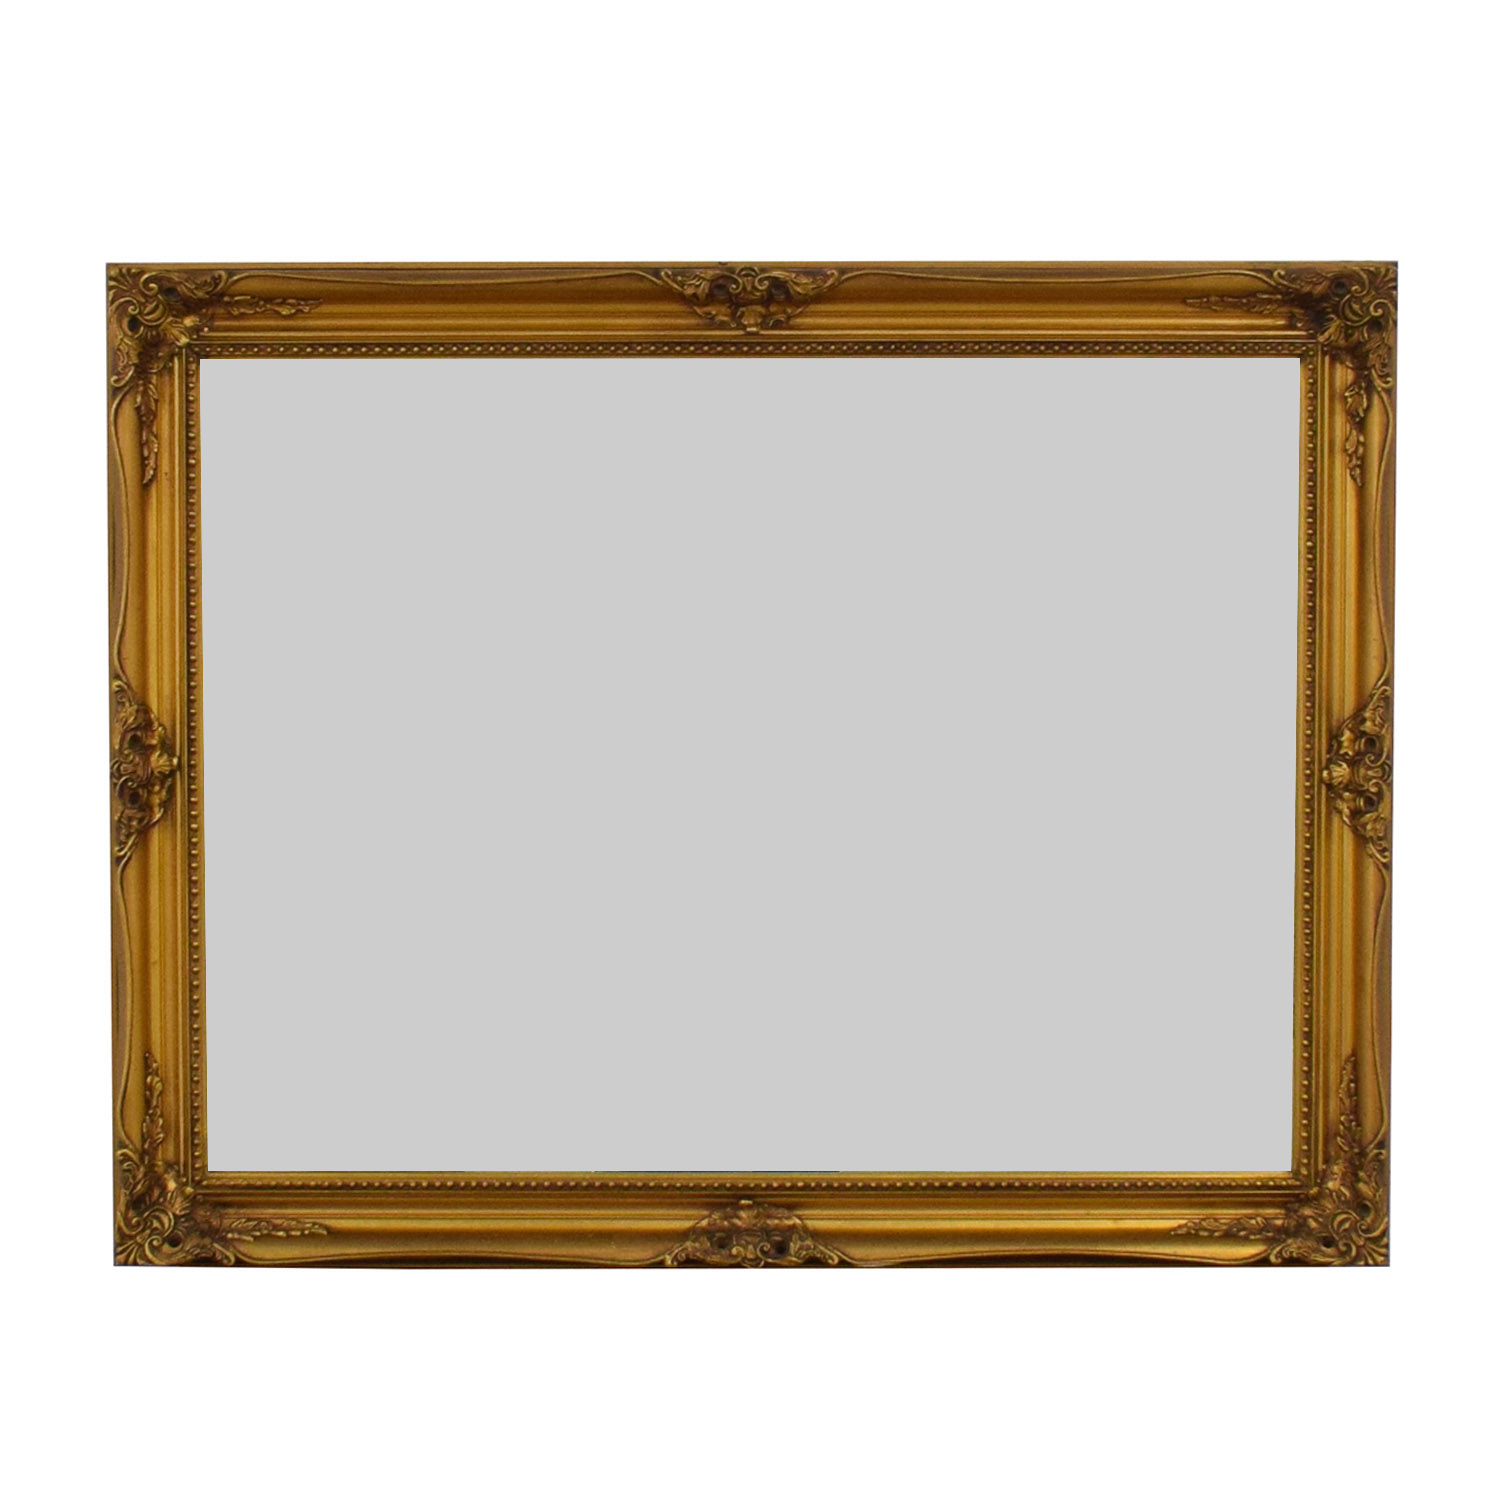 buy Vintage Gold Embellished Mirror